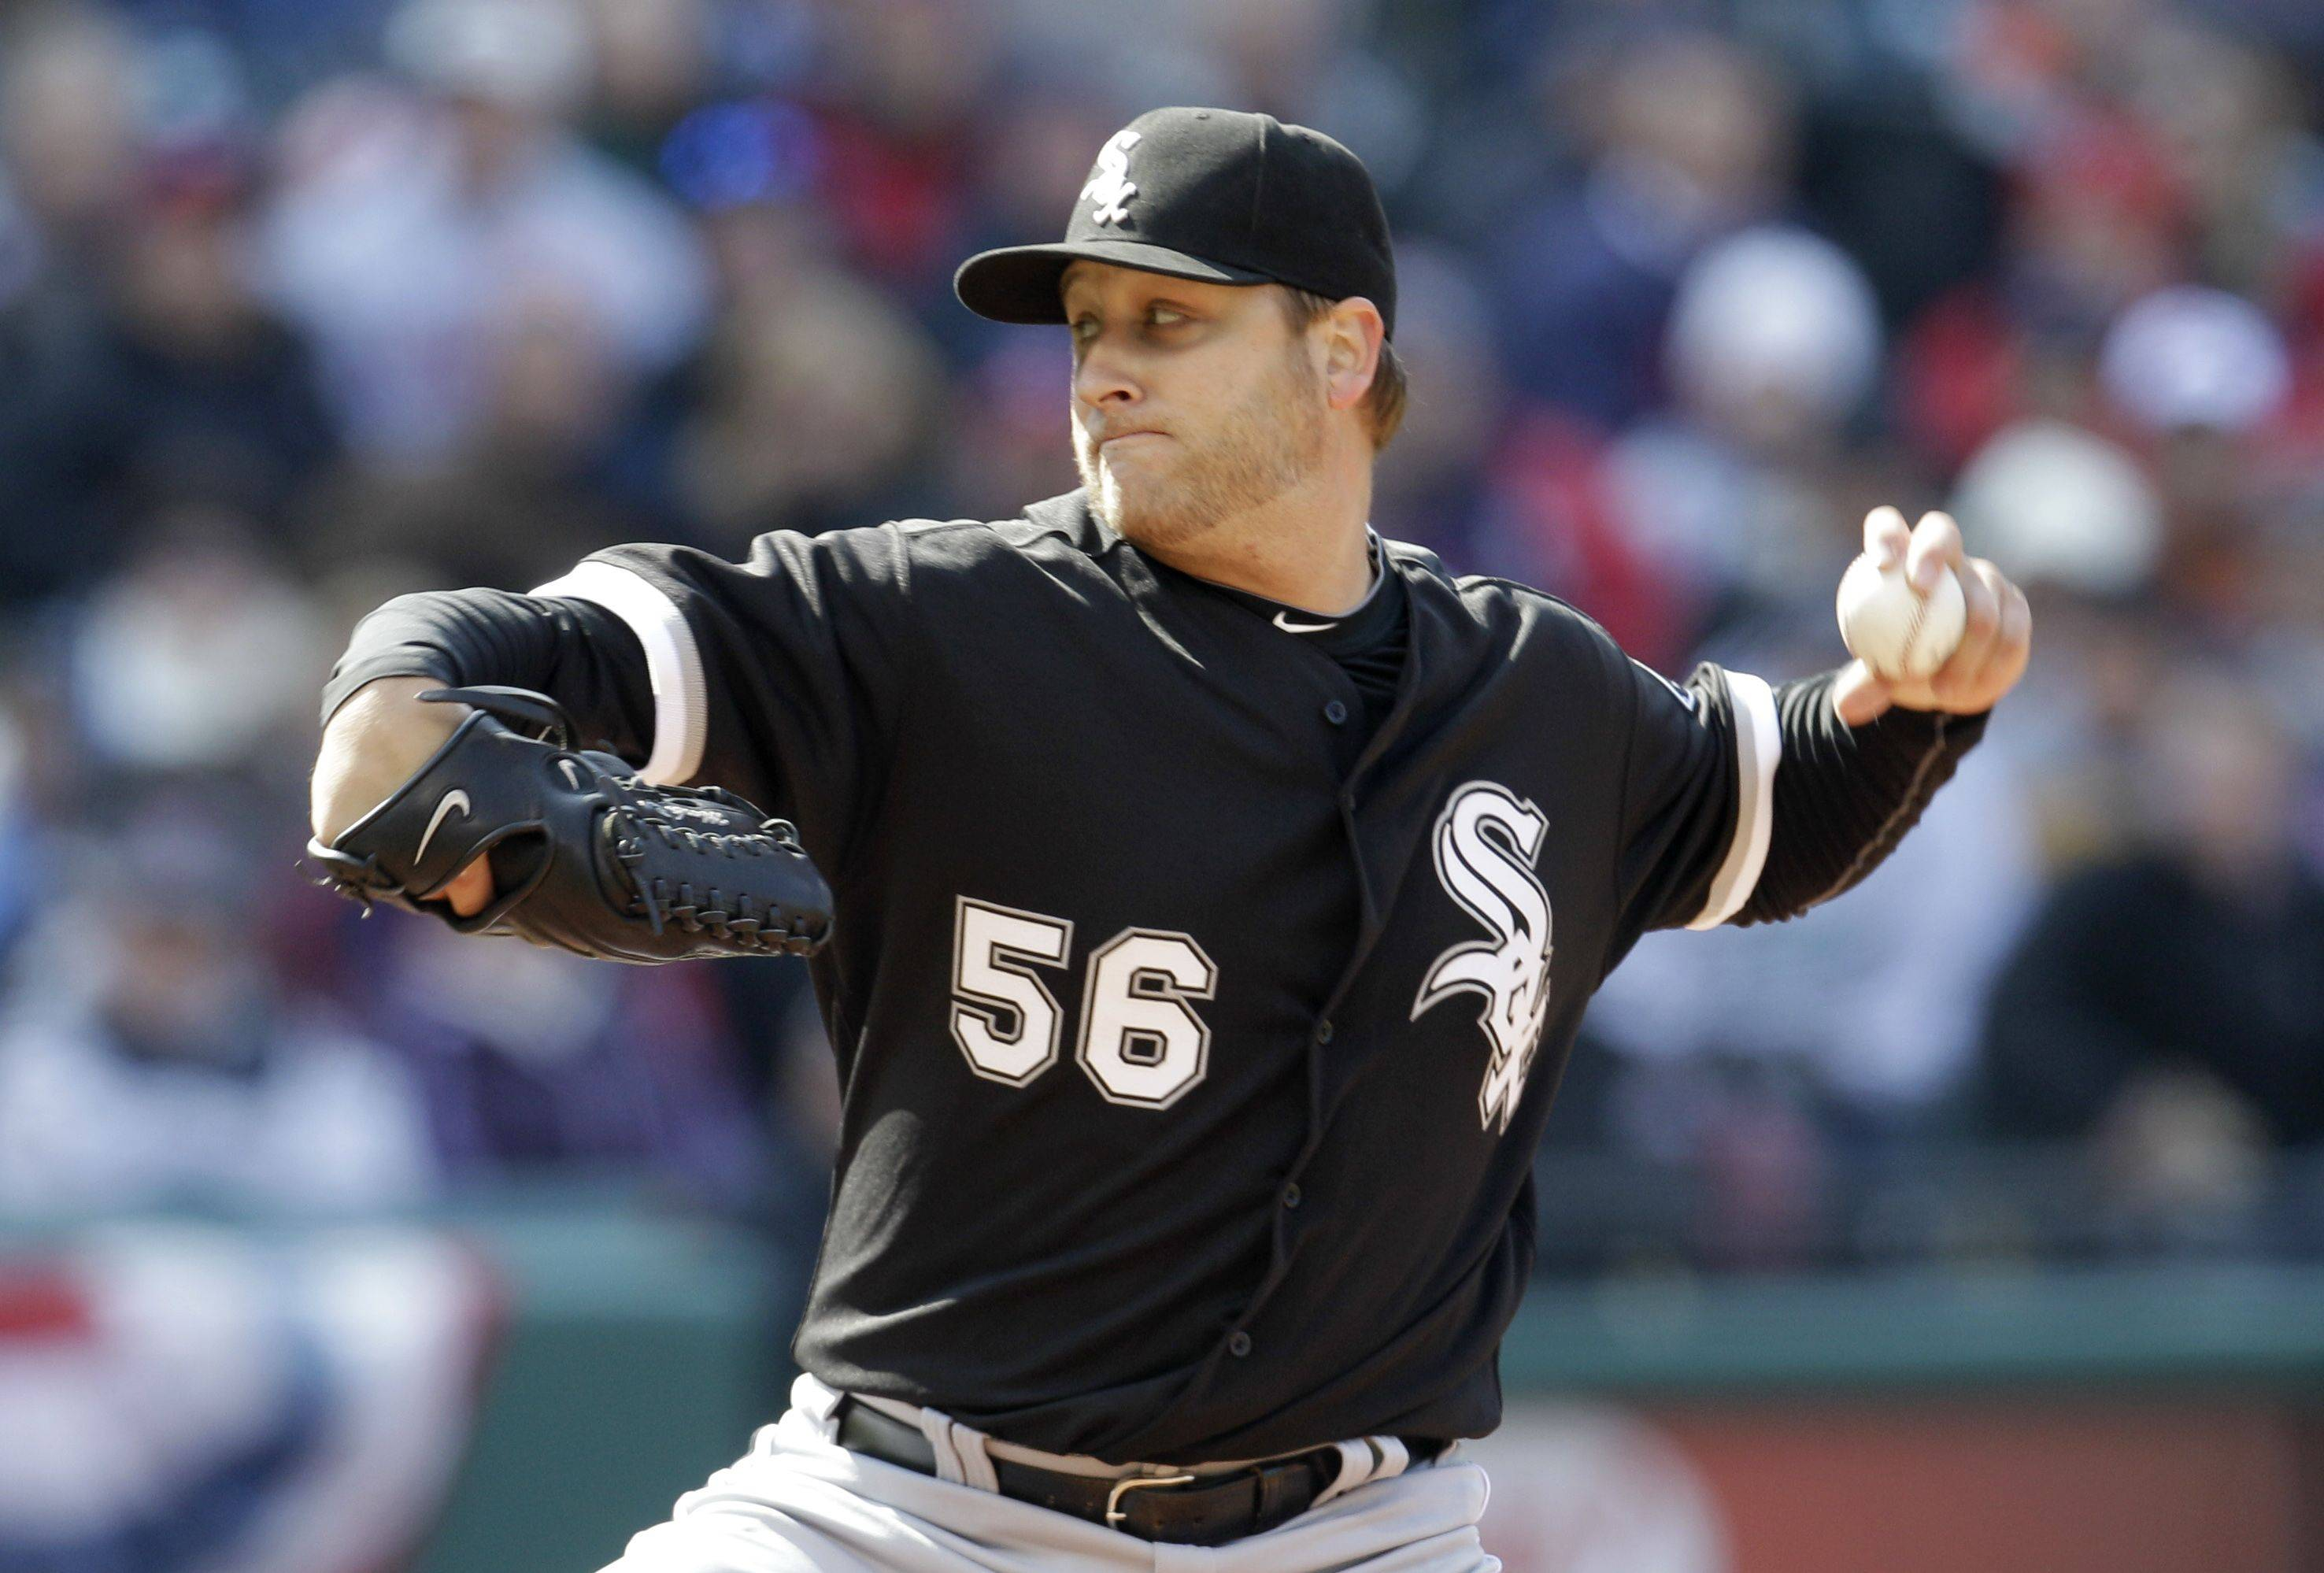 Chicago White Sox starting pitcher Mark Buehrle throws during the second inning against the Cleveland Indians Friday.